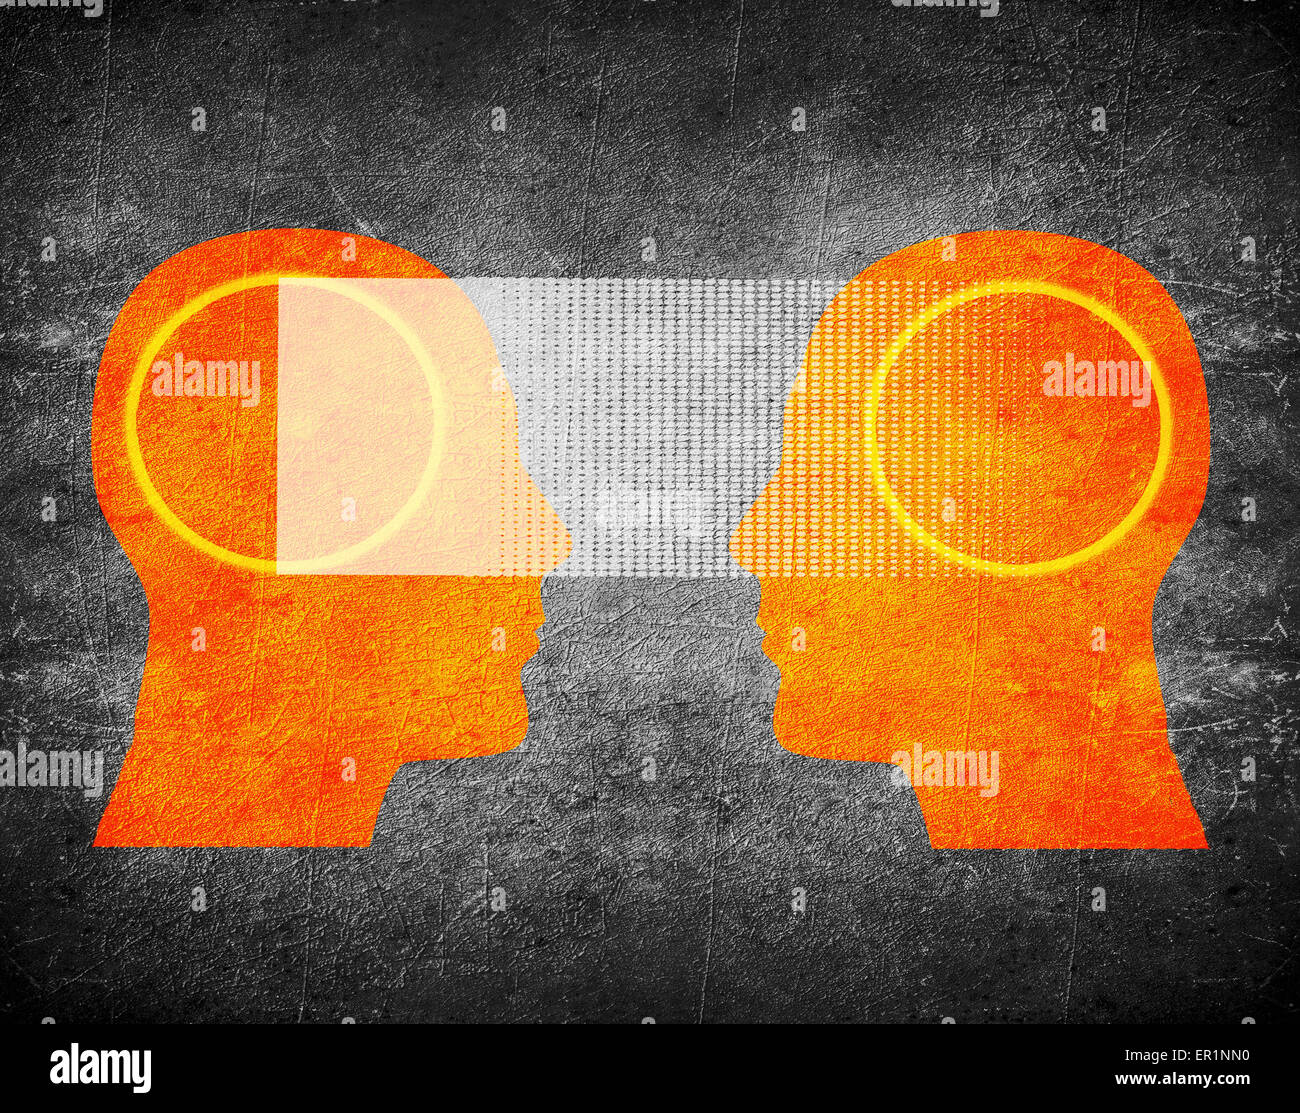 telepathy concept digital illustration - Stock Image